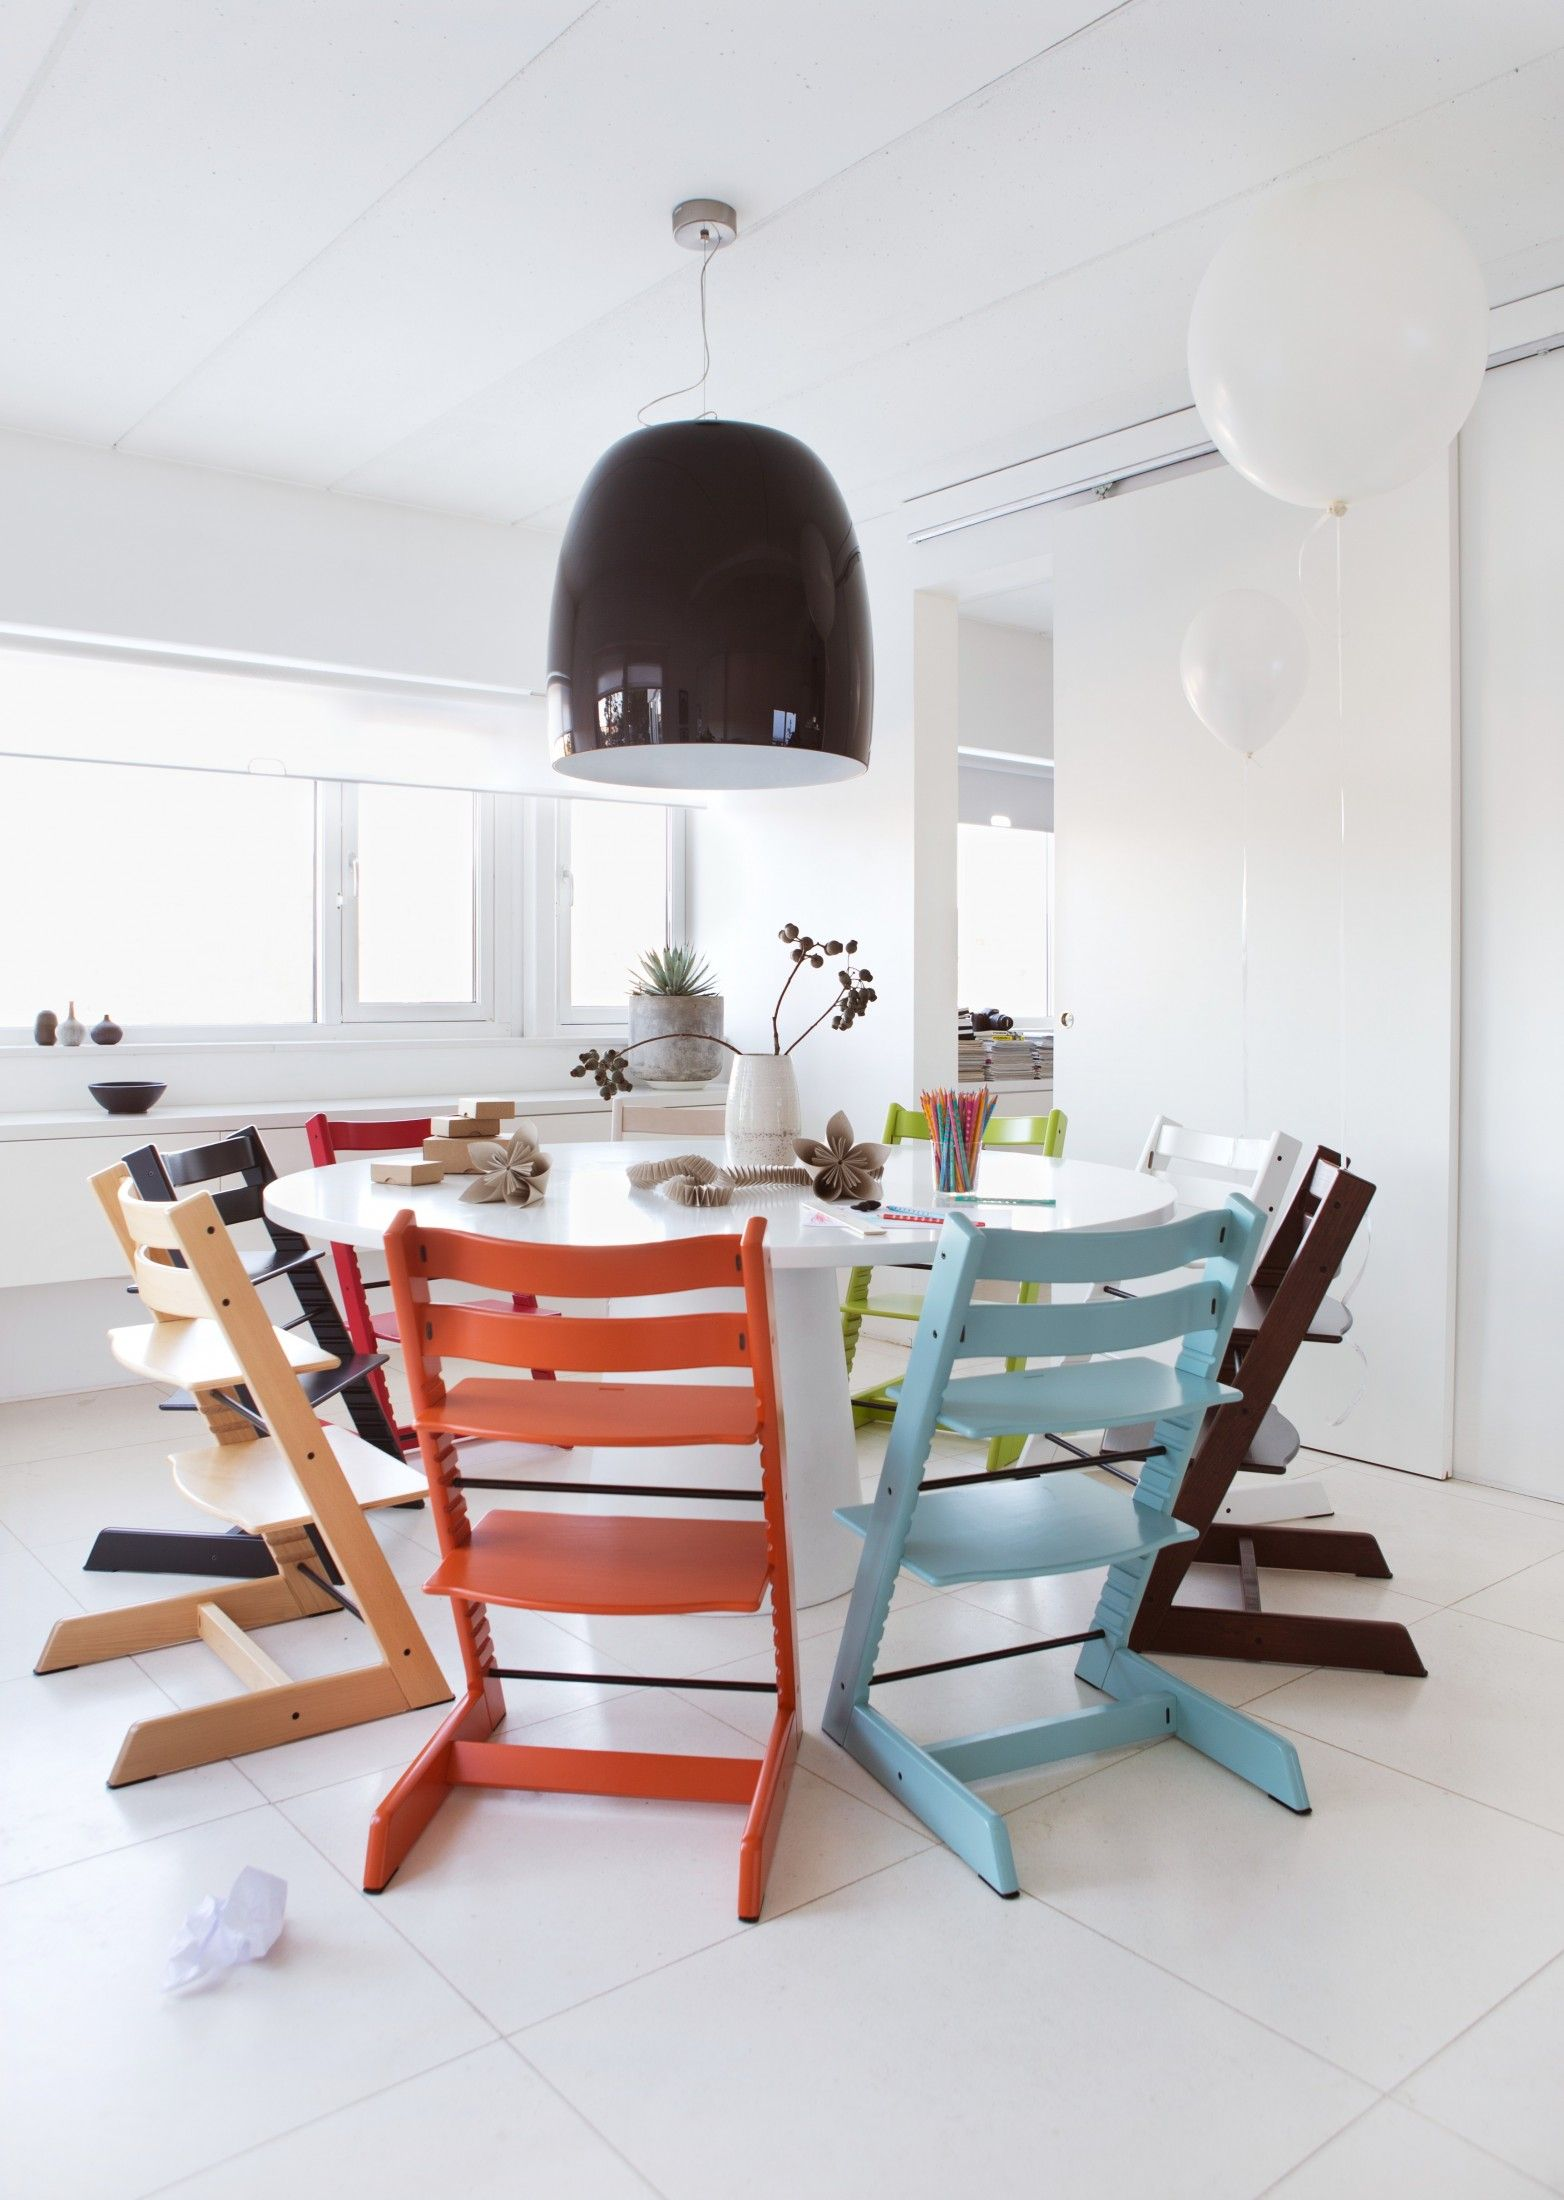 [ad] The Tripp Trapp Chair S Iconic Design Fits Into Any